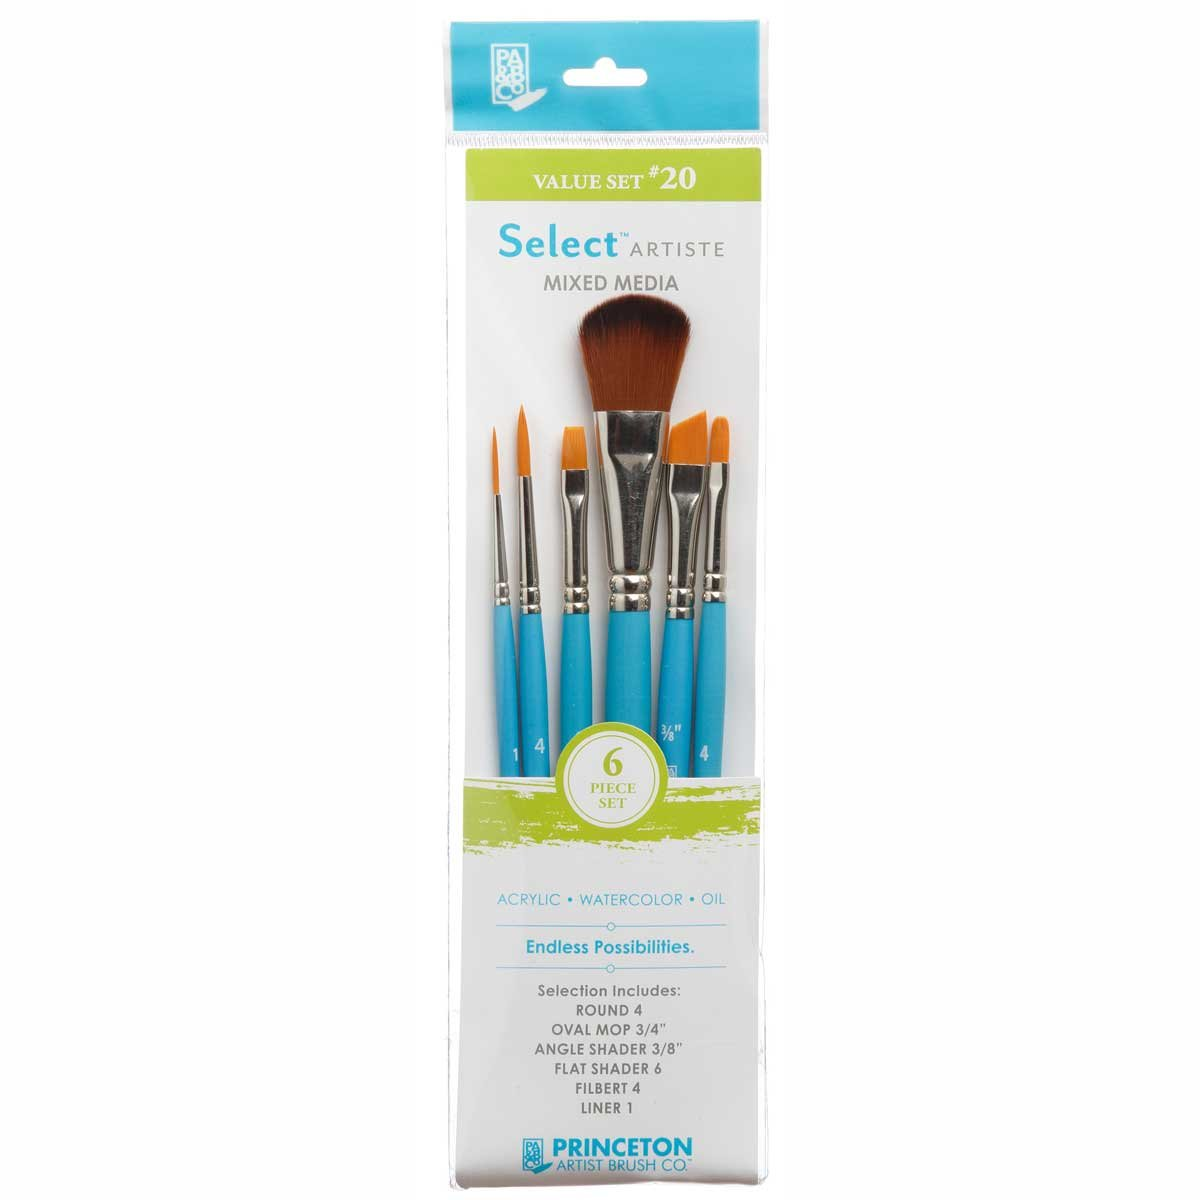 Princeton Select Artiste, Mixed-Media Brushes for Acrylic, Oil, Watercolor Series 3750, 6 Piece Value Set 120